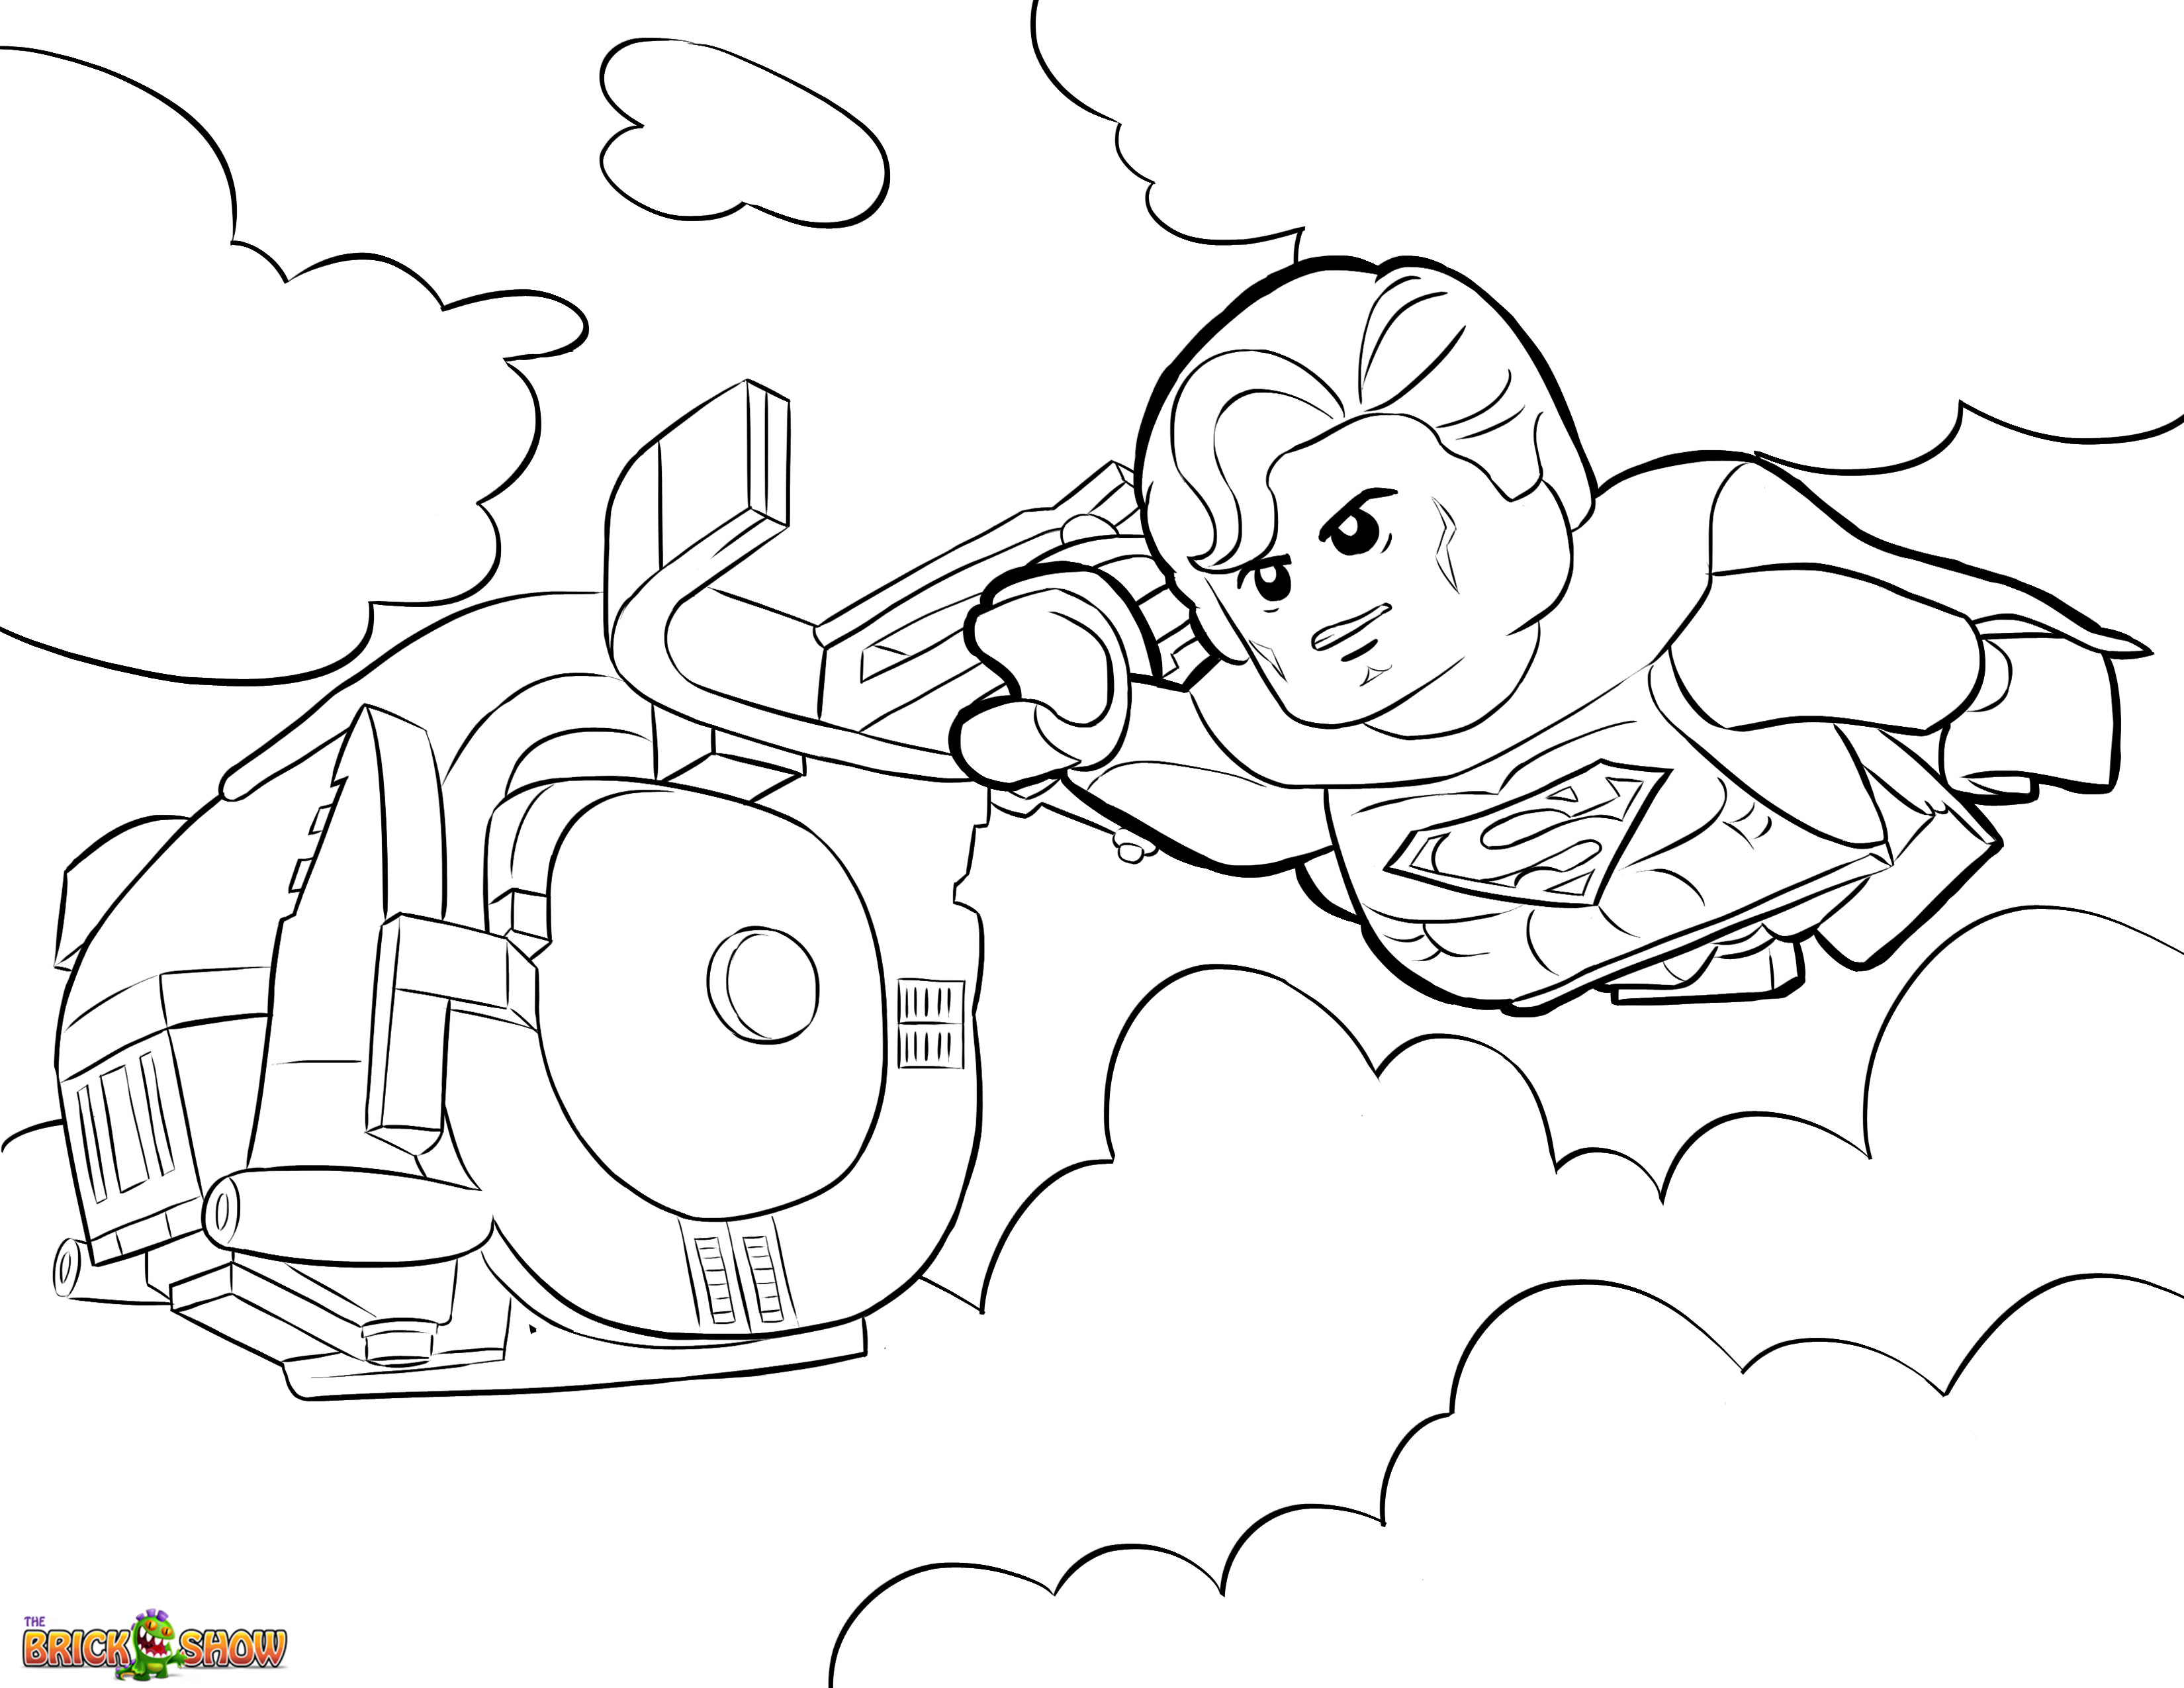 3300x2550 The Lego Movie Coloring Page, Lego Superman Printable Color Sheet